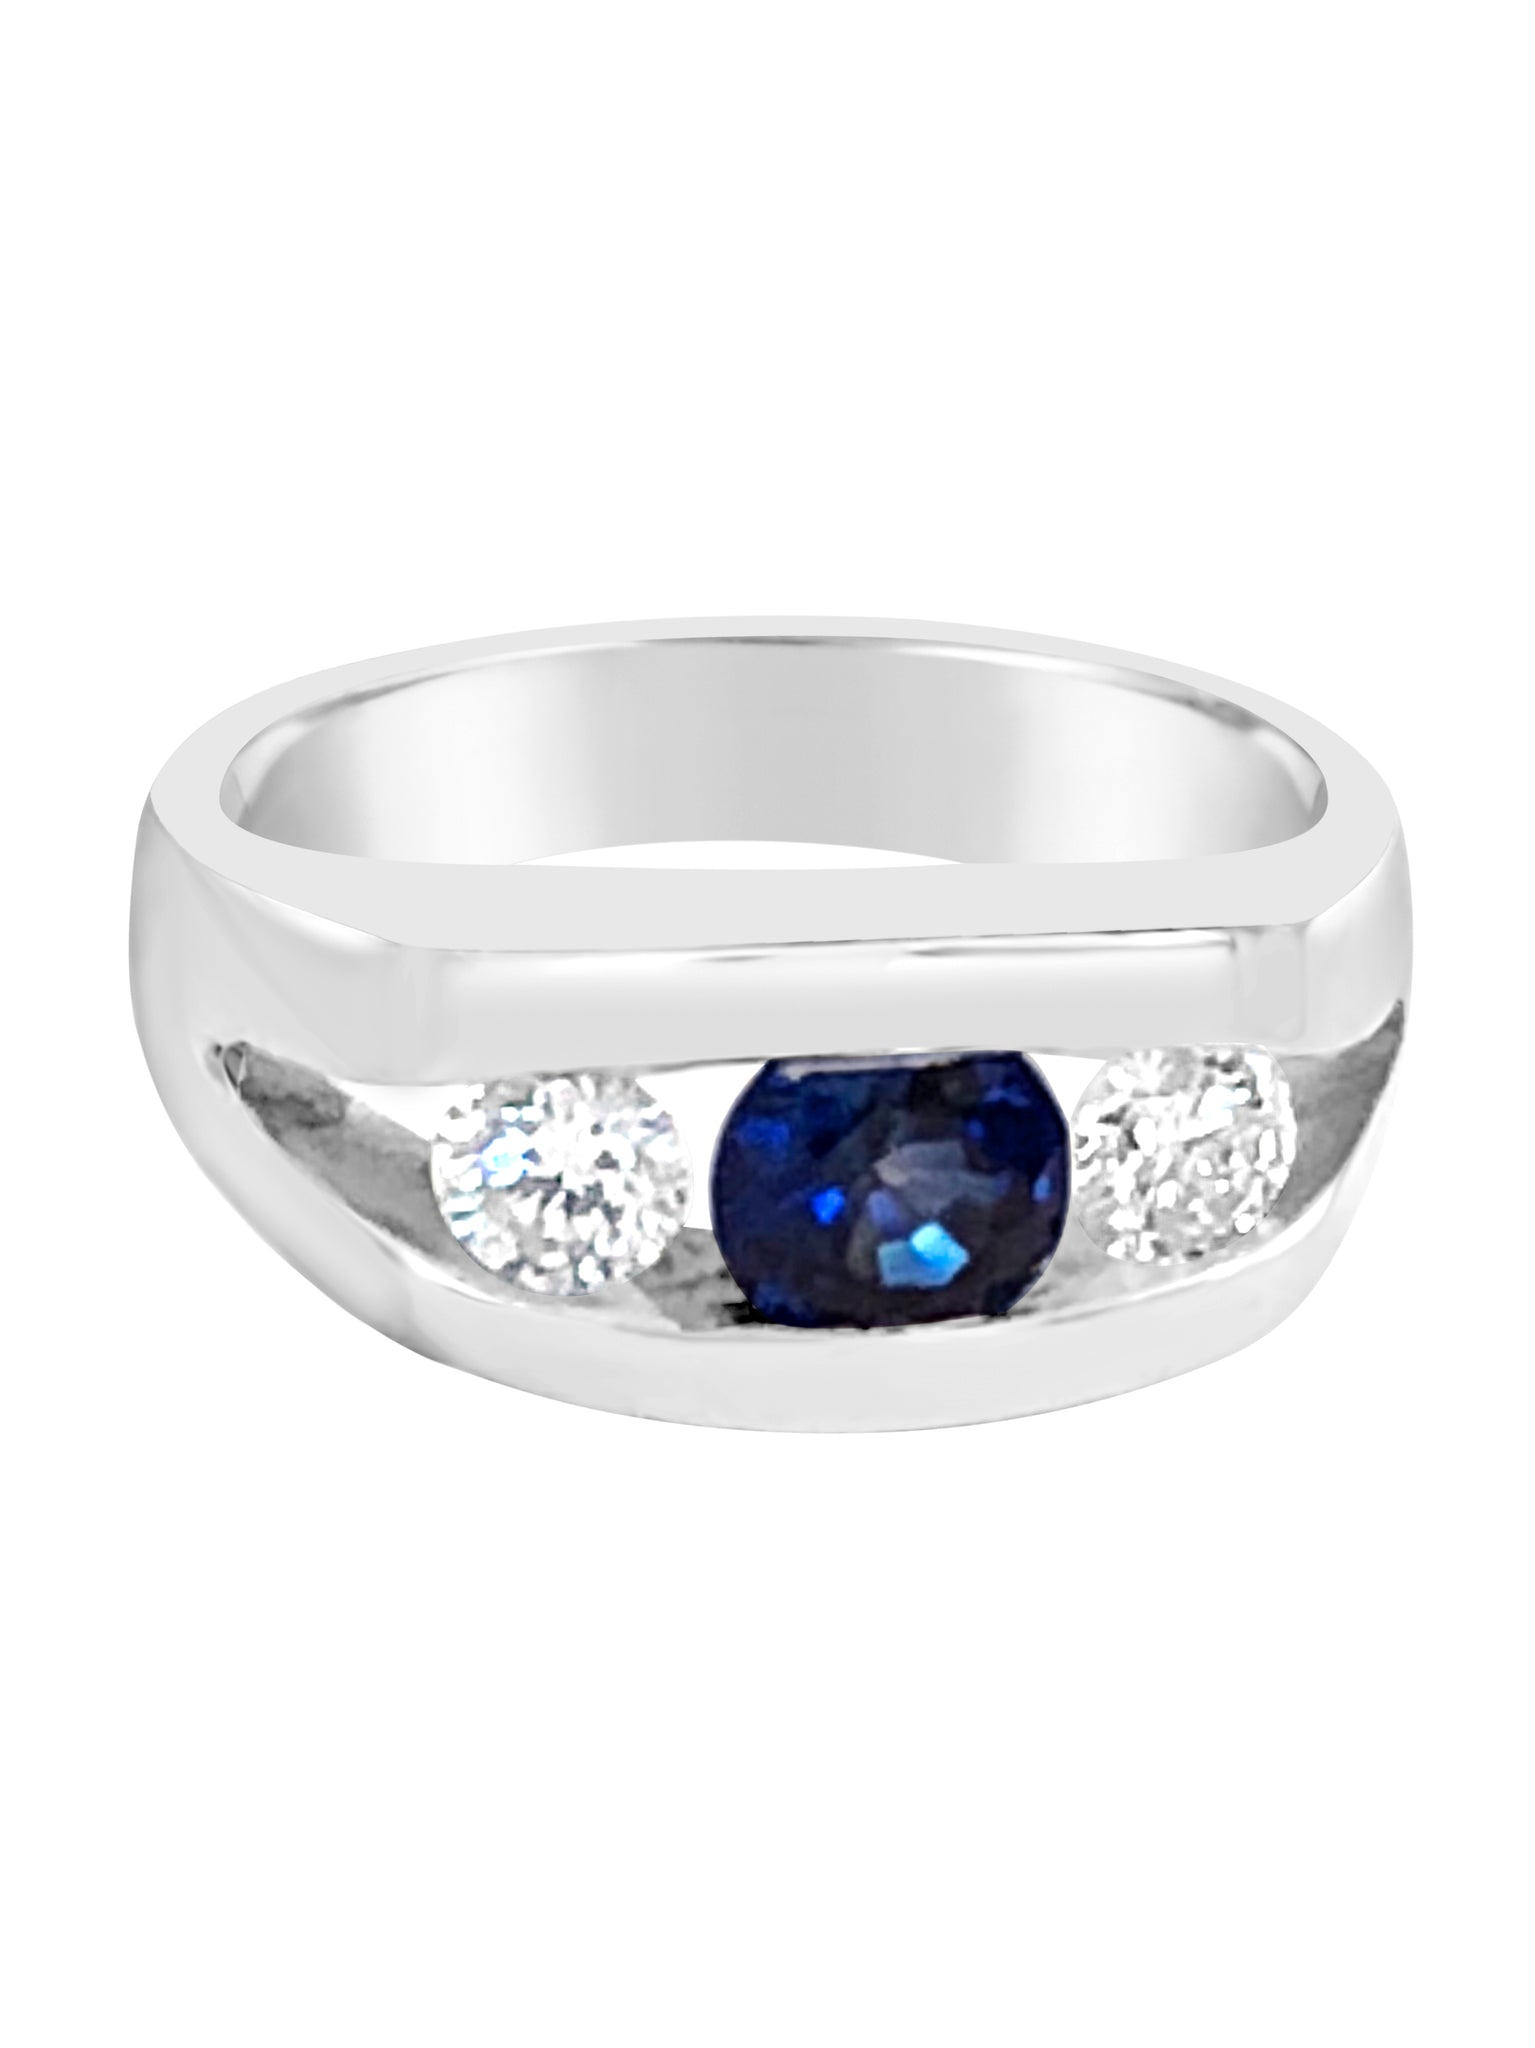 14k white gold 3 stone ring with sapphire and diamonds sapphire wedding band Michael's Jewelry Cape Cod Provincetown